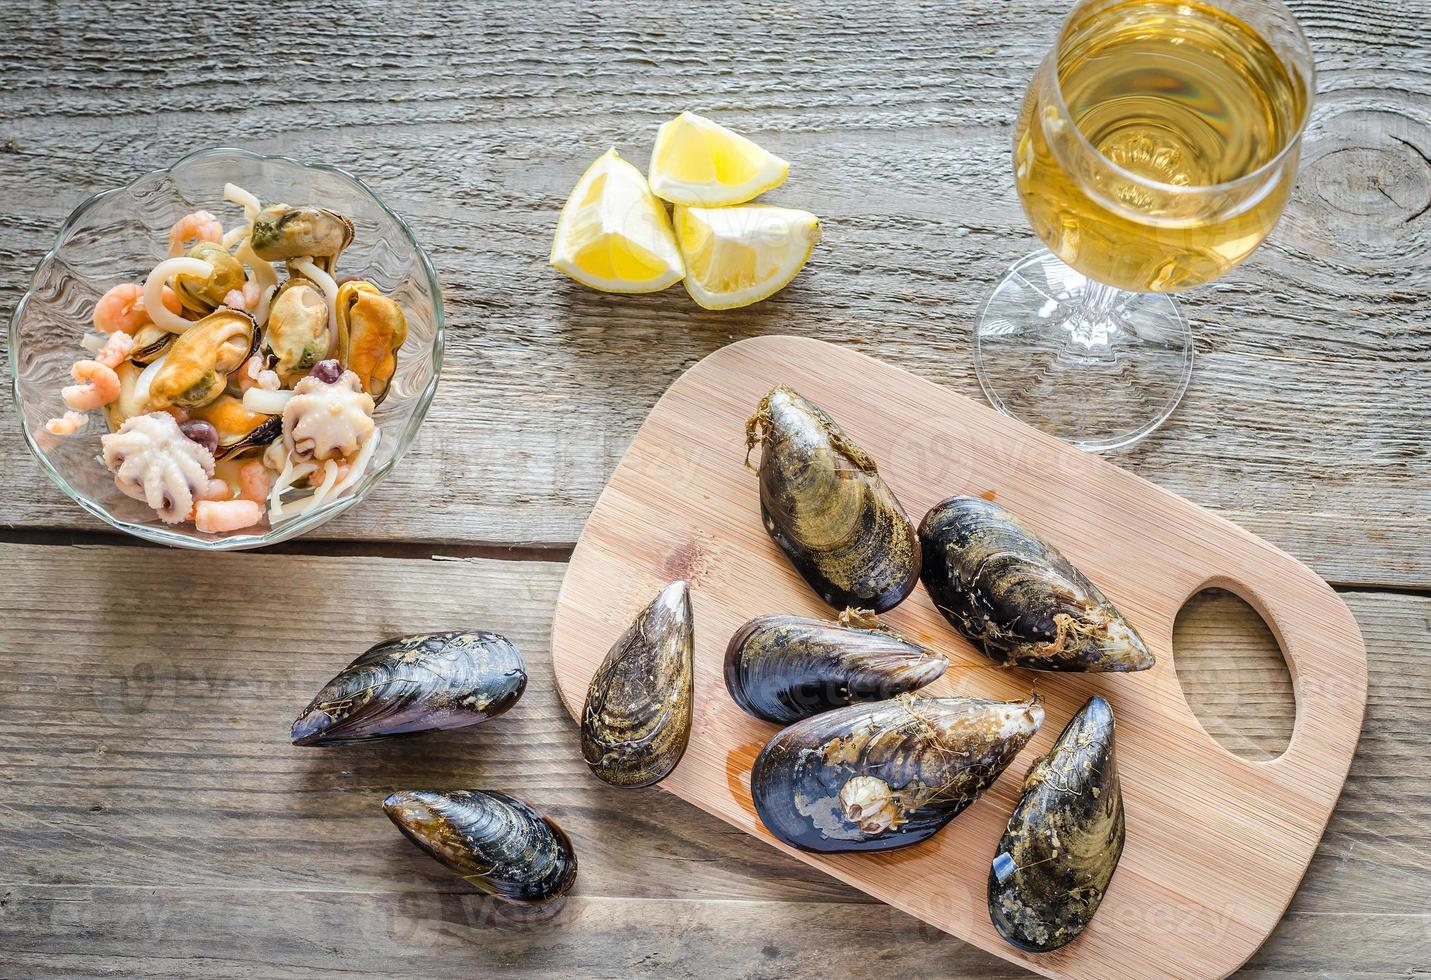 Mussels with a glass of wine on the wooden table photo